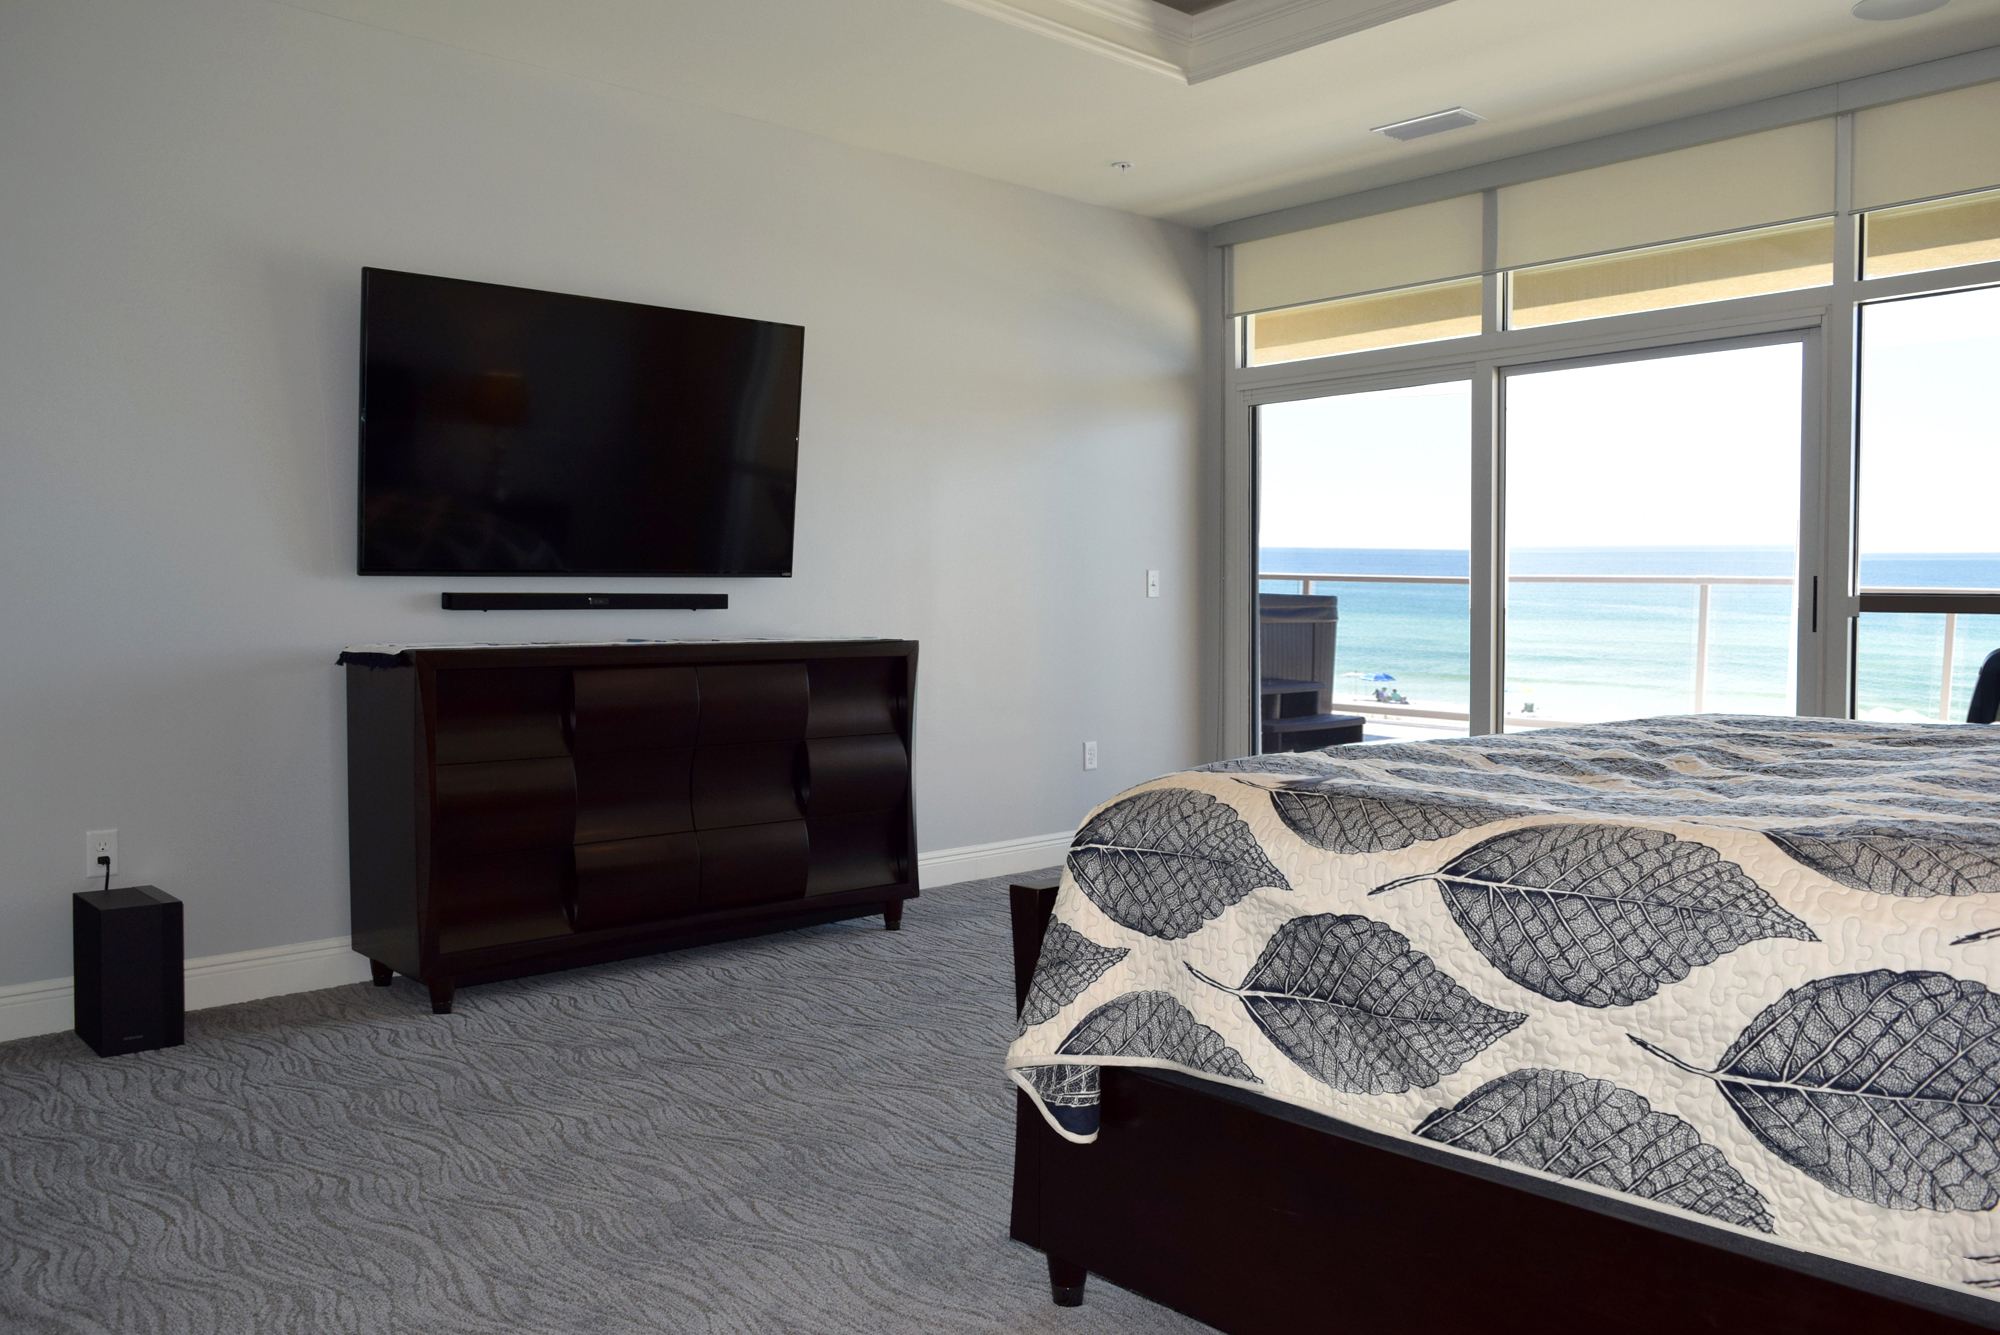 Regency Cabanas #B6 Condo rental in Regency Cabanas Pensacola Beach in Pensacola Beach Florida - #18